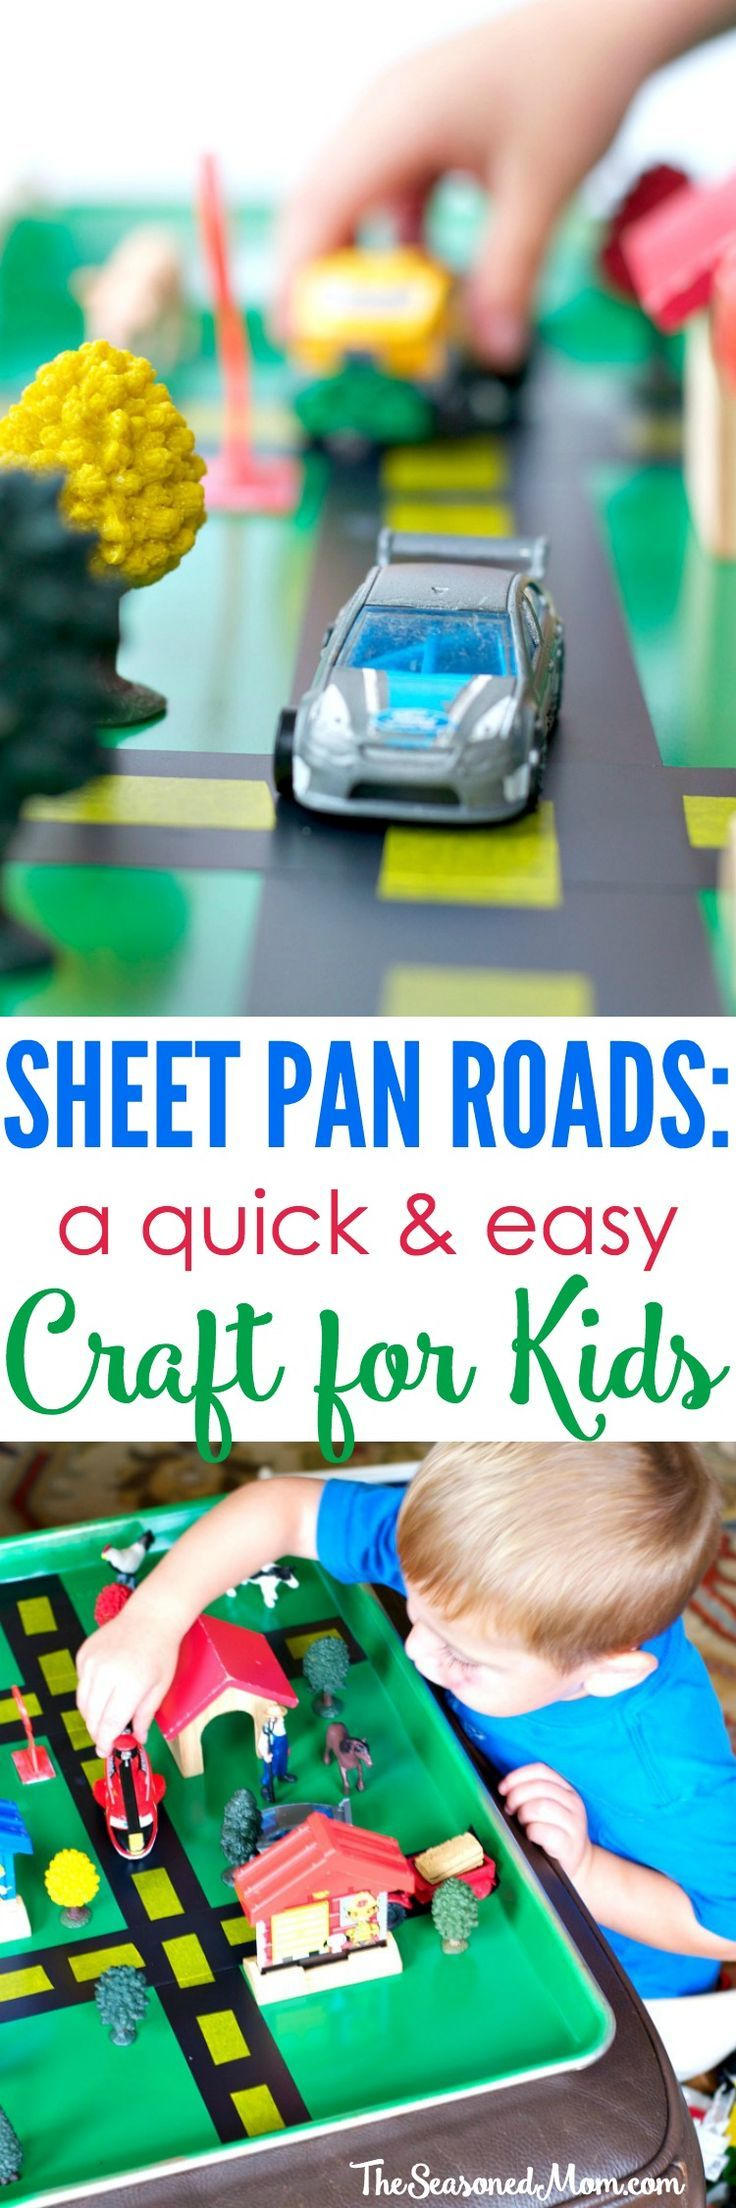 With just a few minutes and a handful of simple supplies, you can create this Homemade Gift for Kids: Sheet Pan Roads! #kids #craft